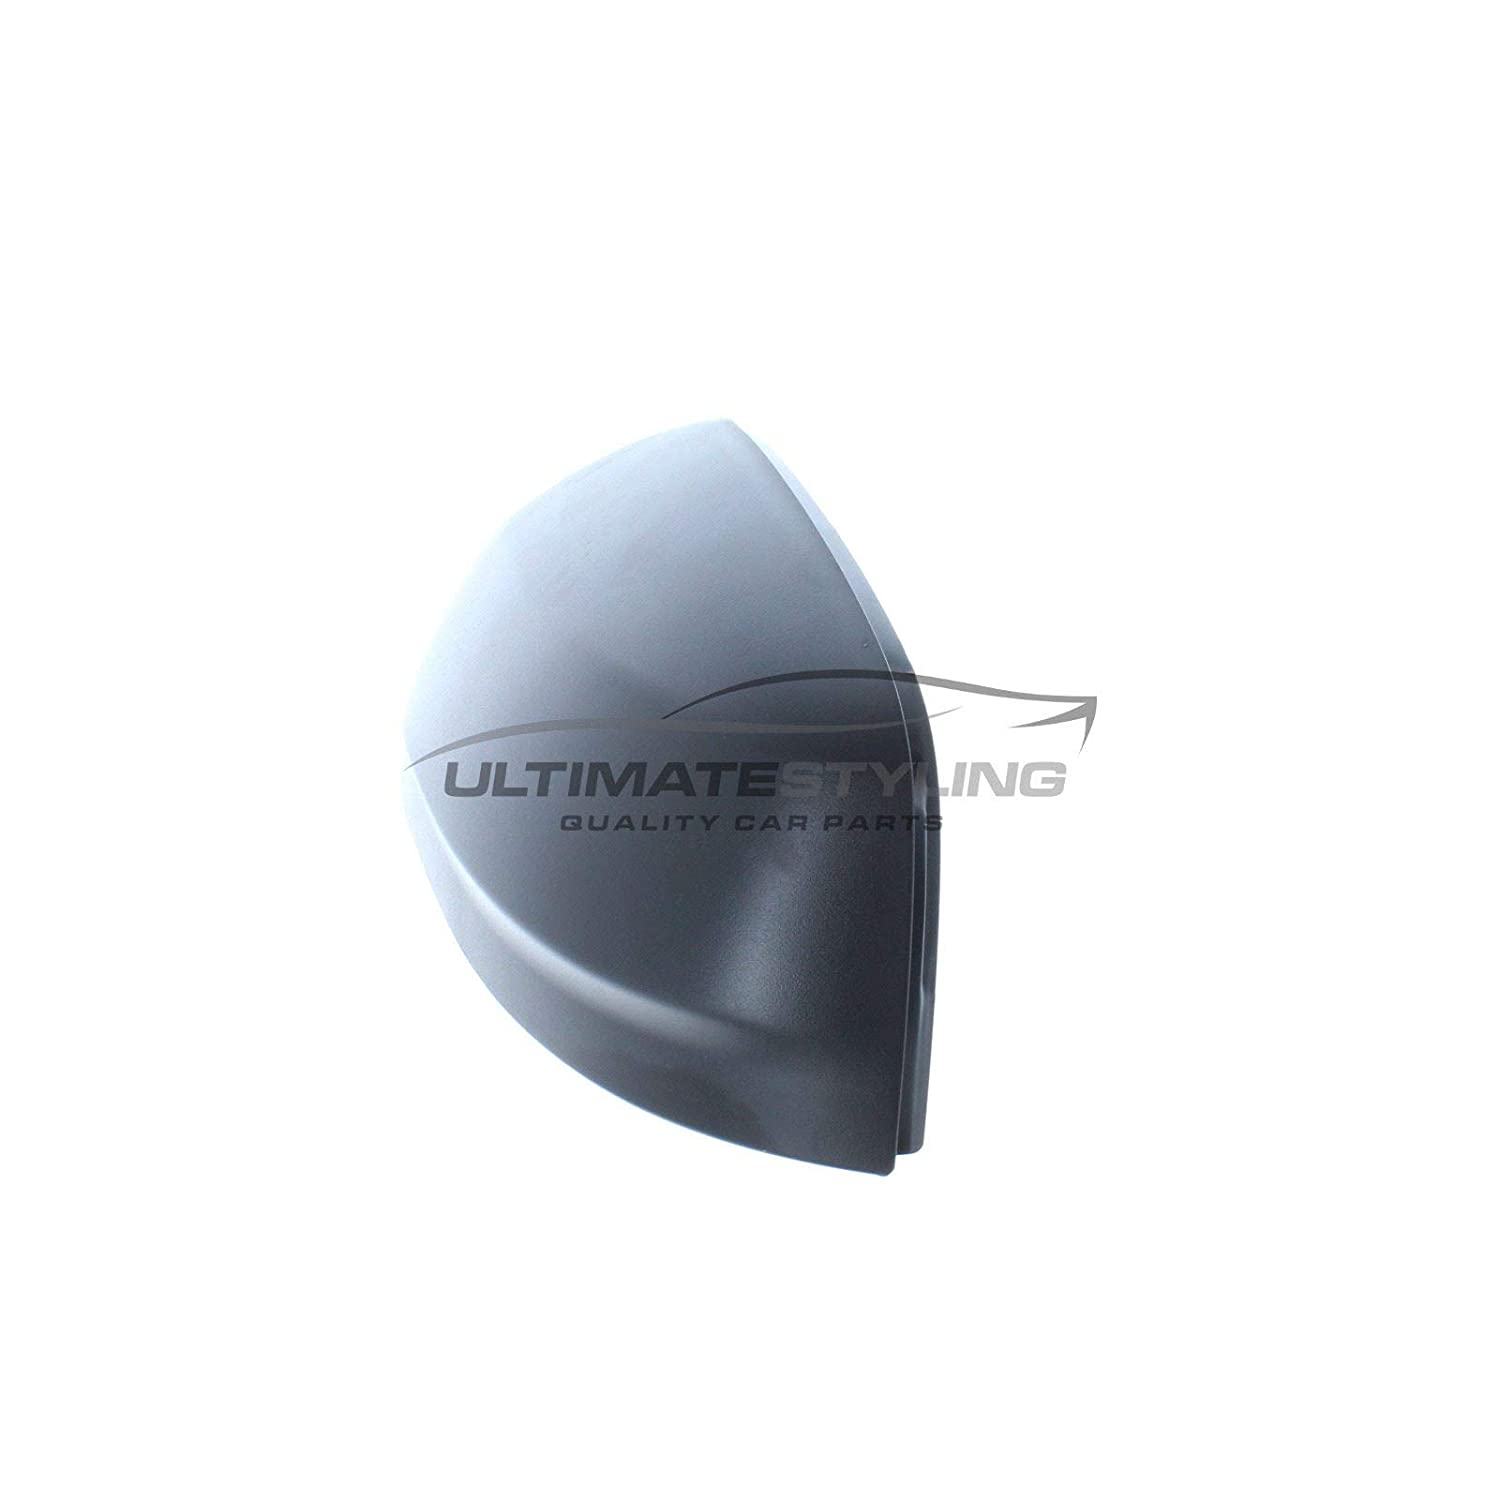 Ultimate Styling Aftermarket Replacement Wing Mirror Cover Cap Colour Of Cover Black Left Hand Side LH Textured For Passenger Side